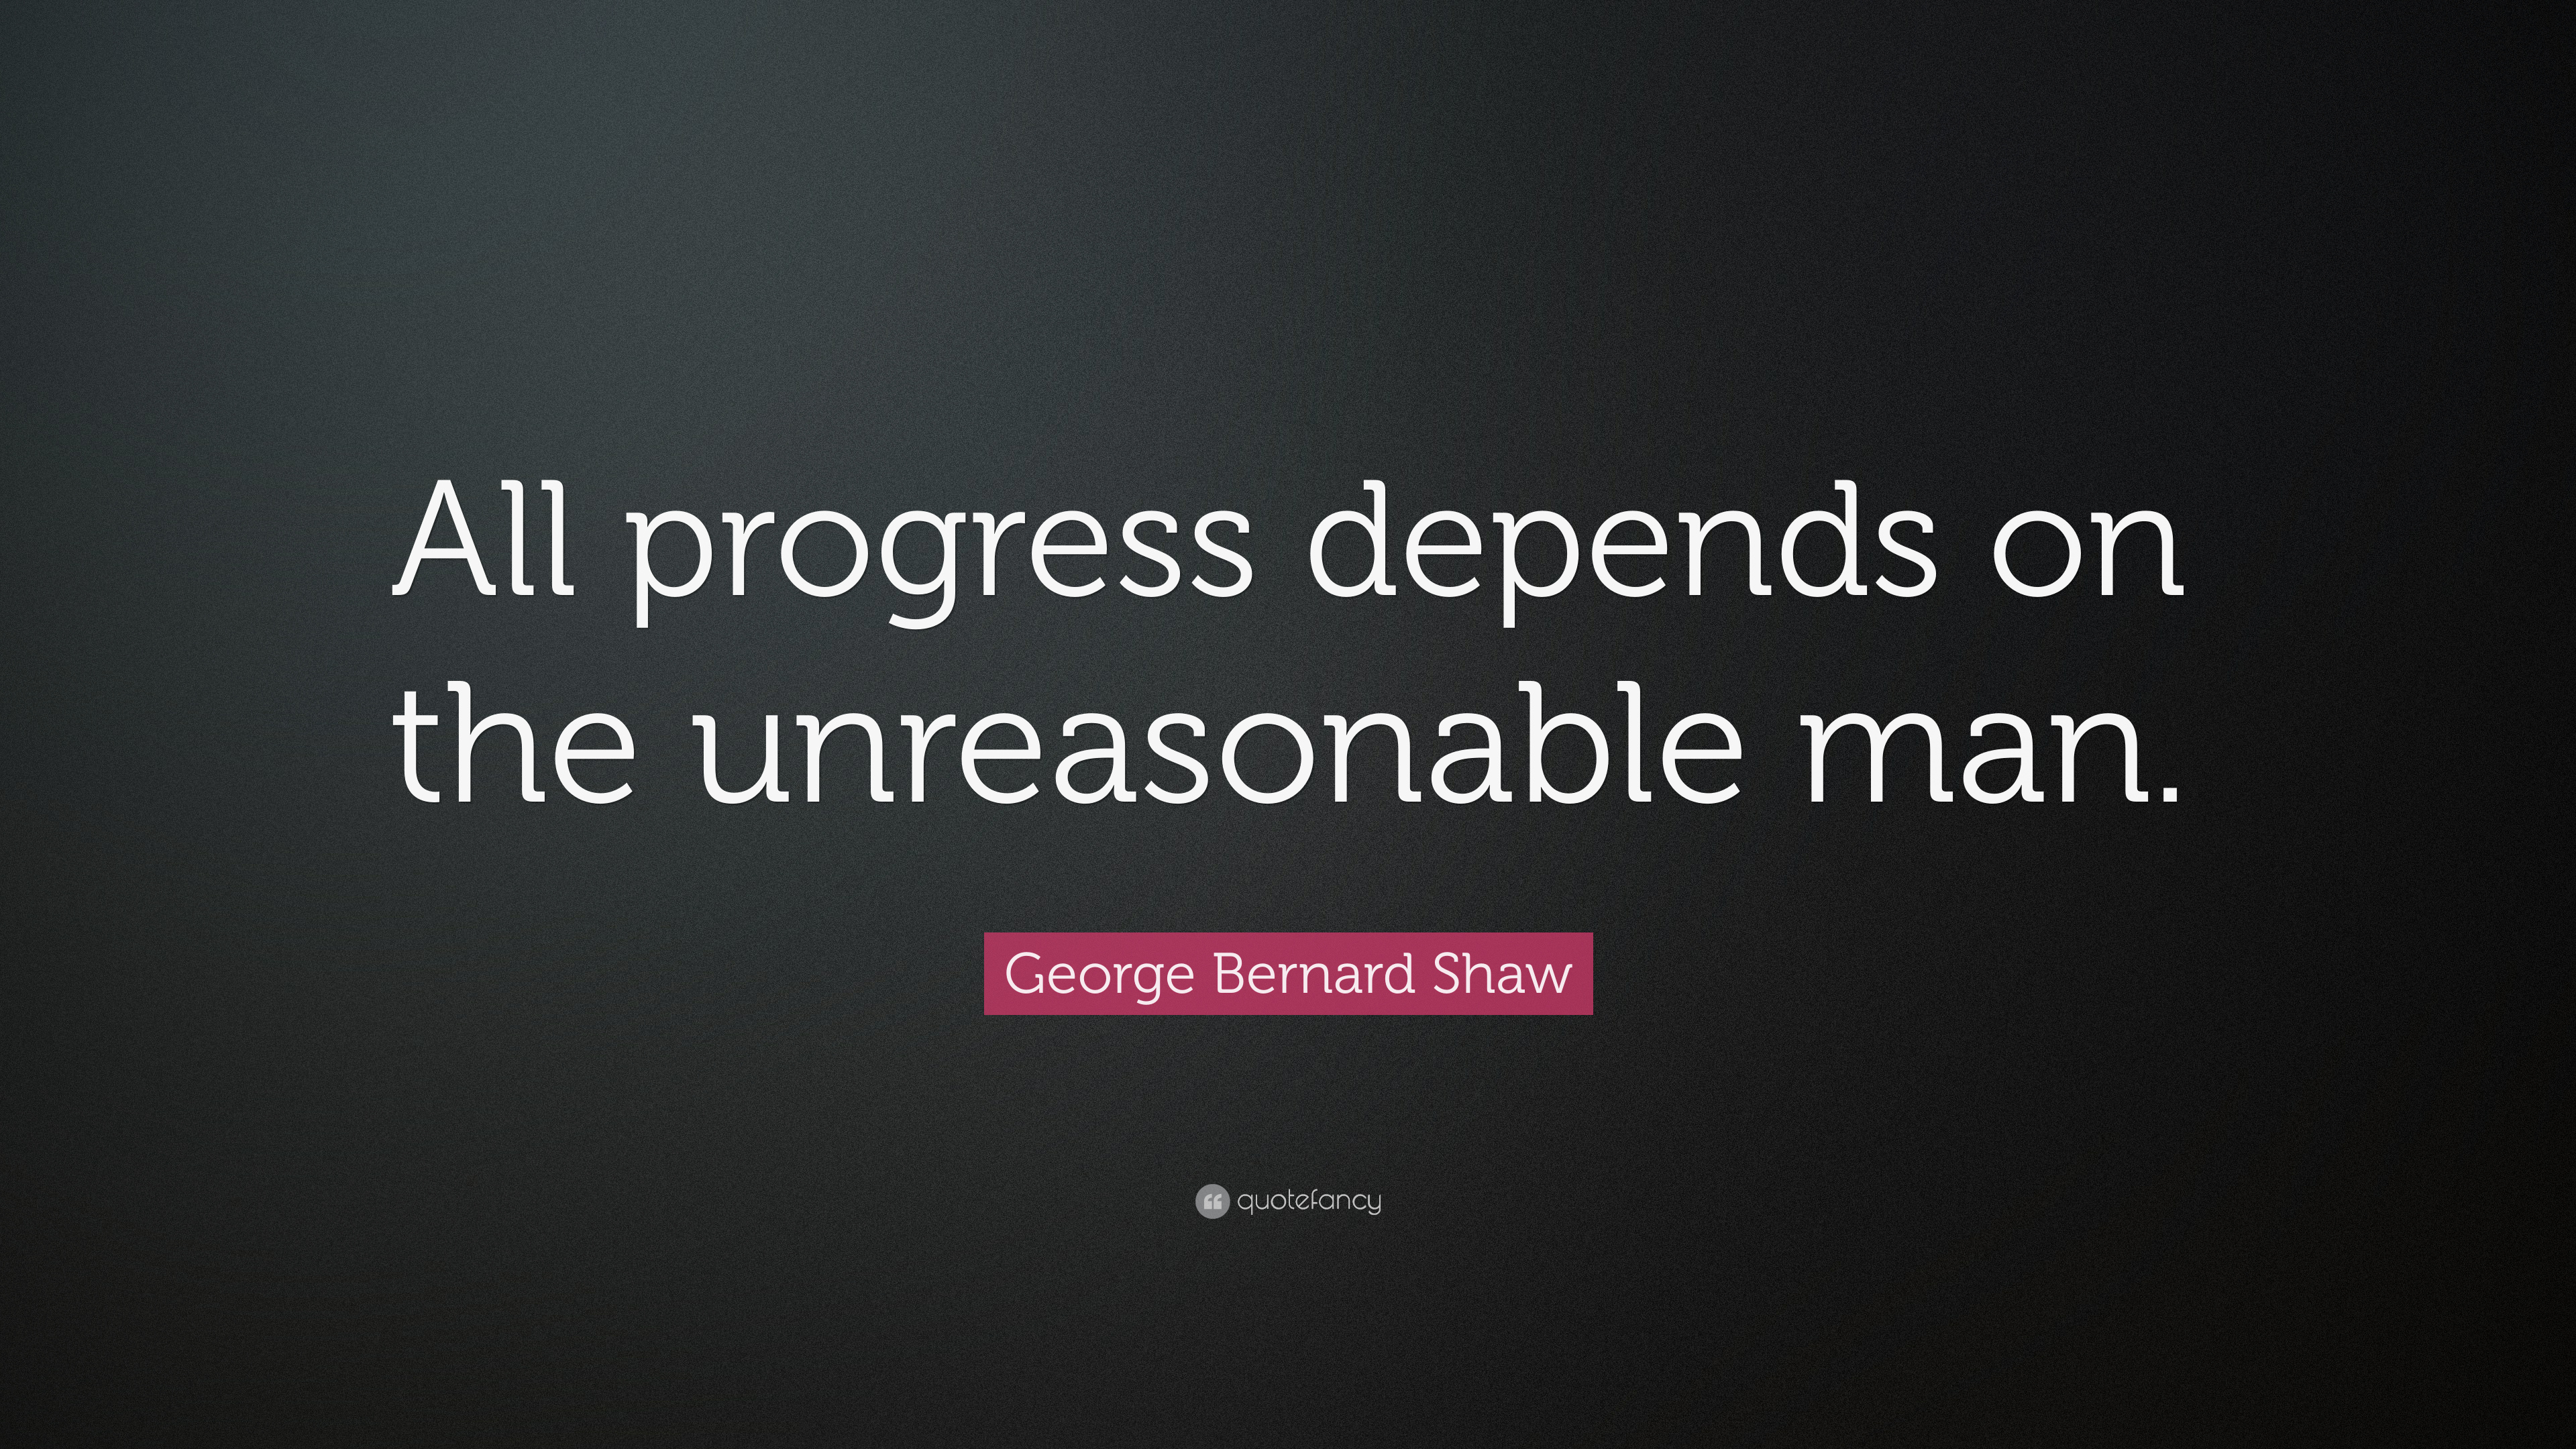 Quotes About Progress Ambition Quotes 40 Wallpapers  Quotefancy